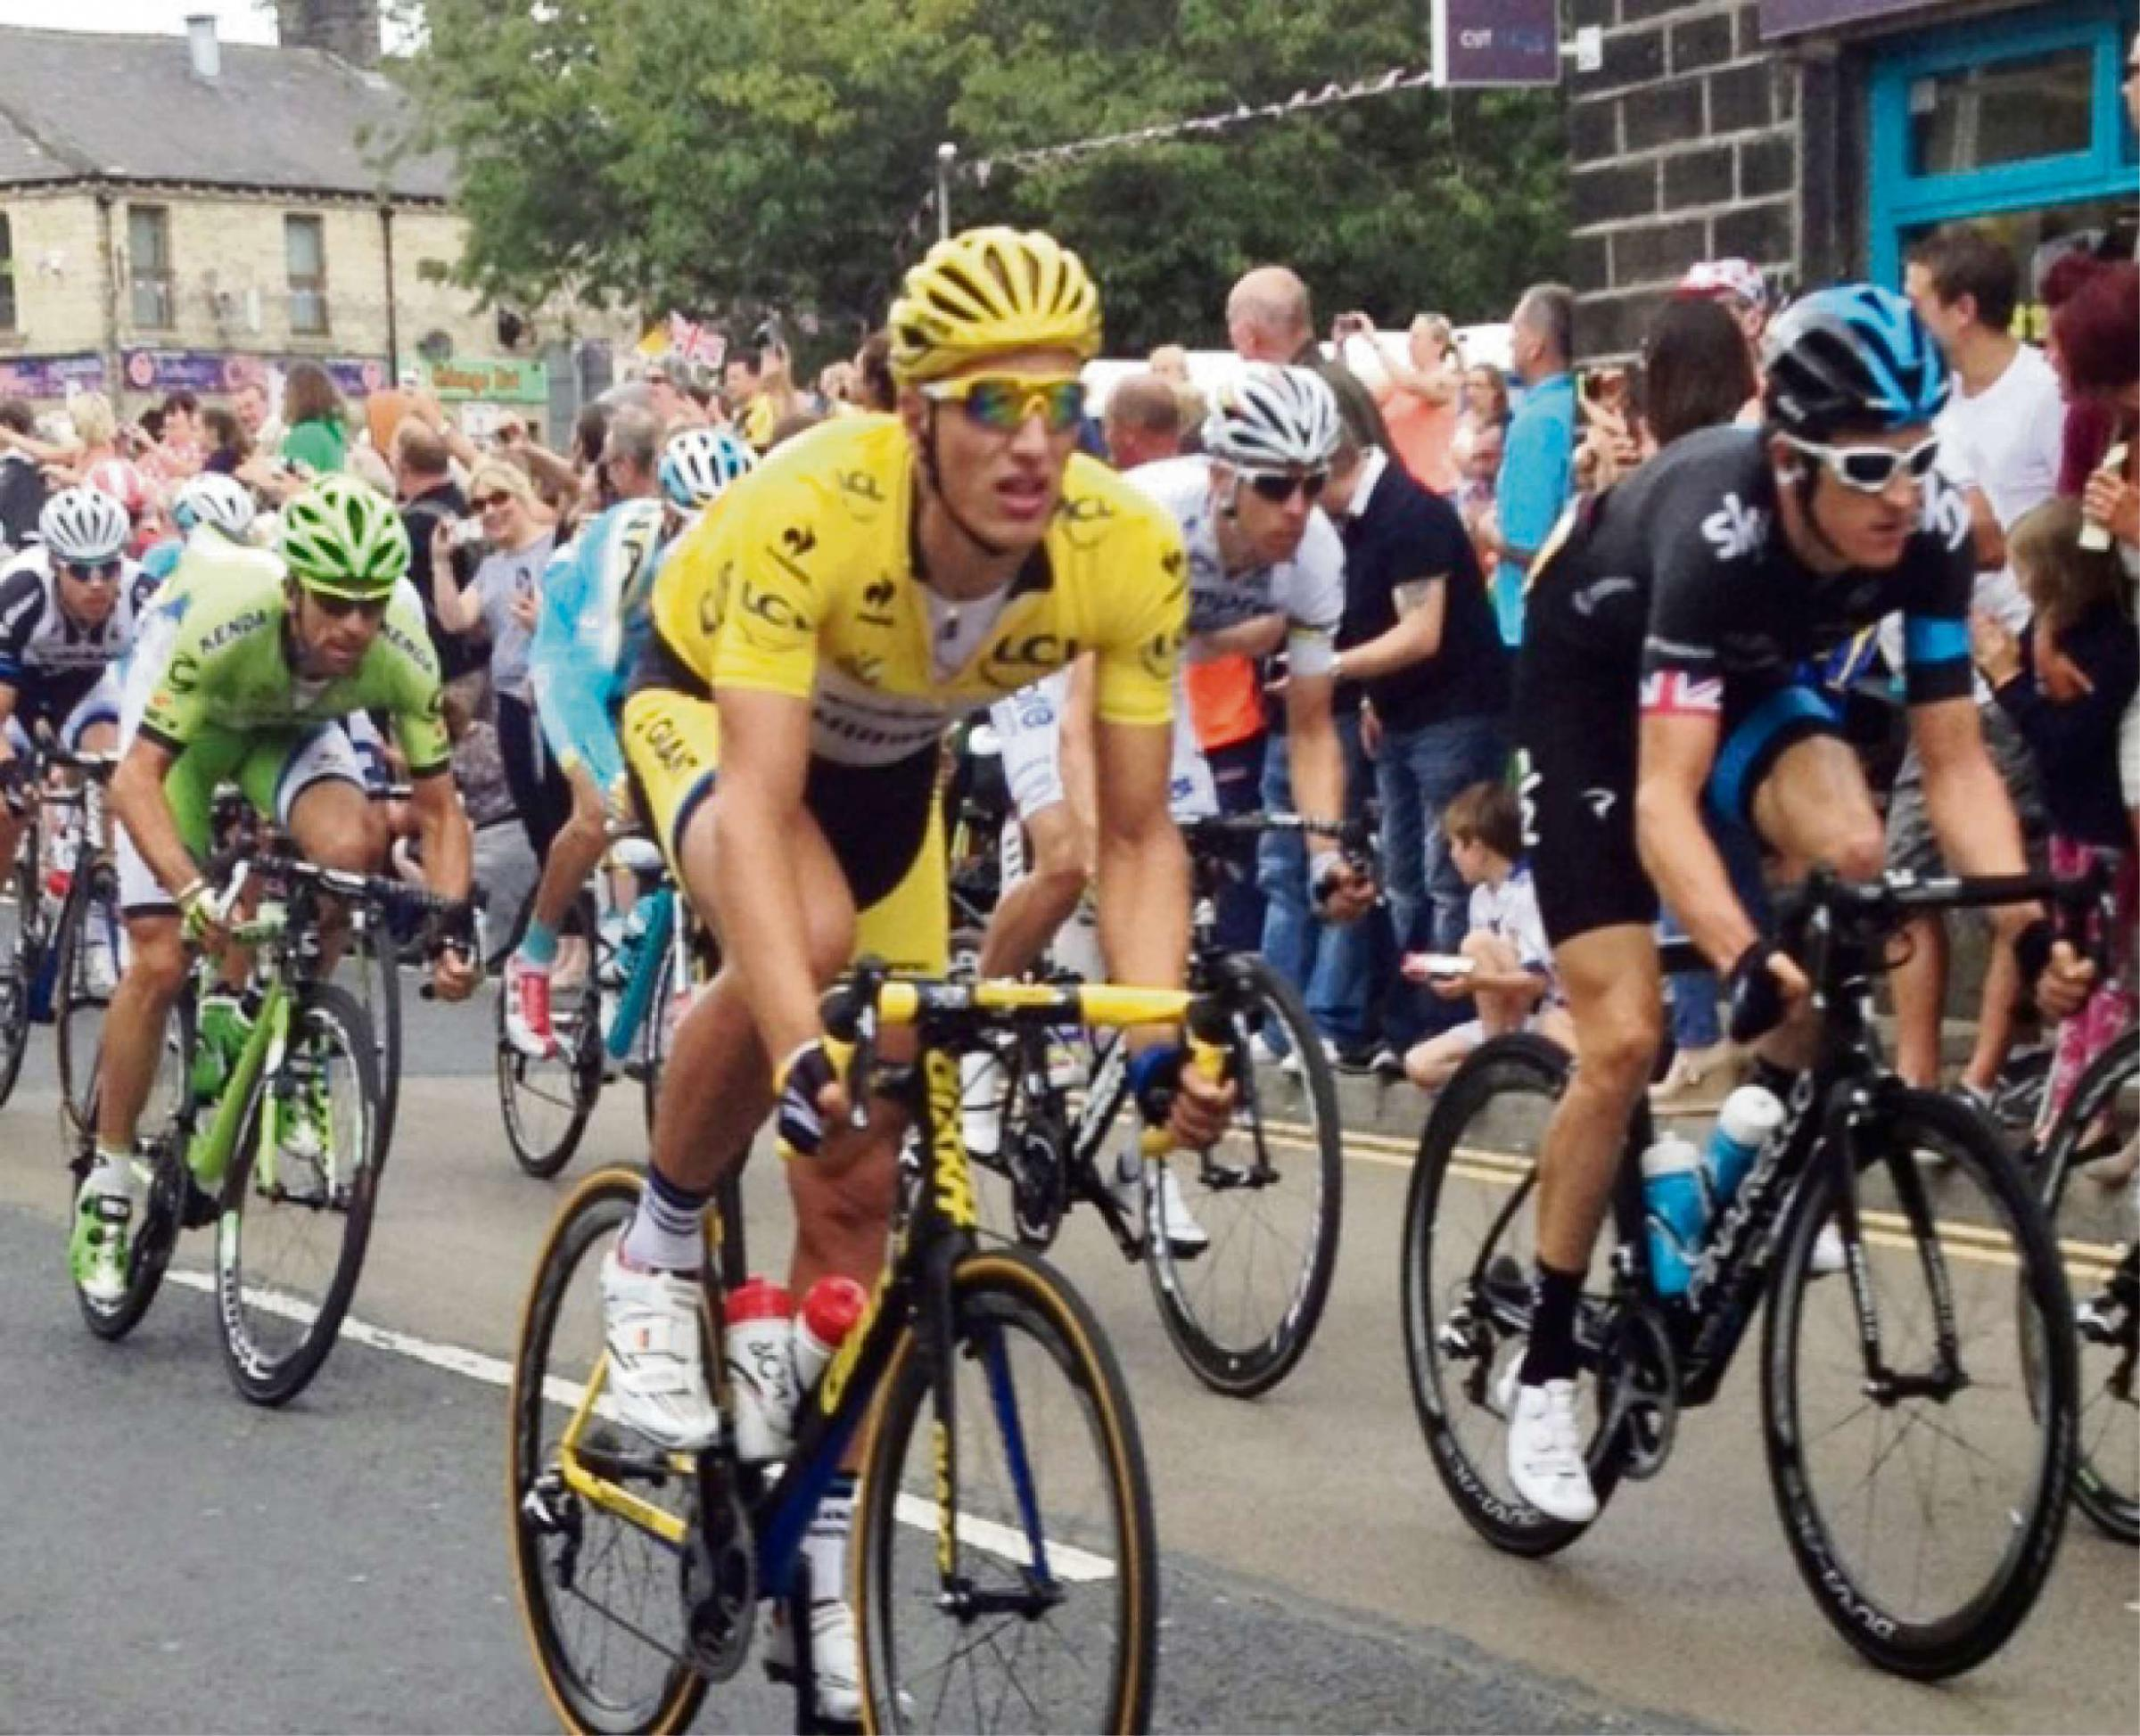 The actual Tour de France in Yorkshire. Farnworth cyclists are doing the